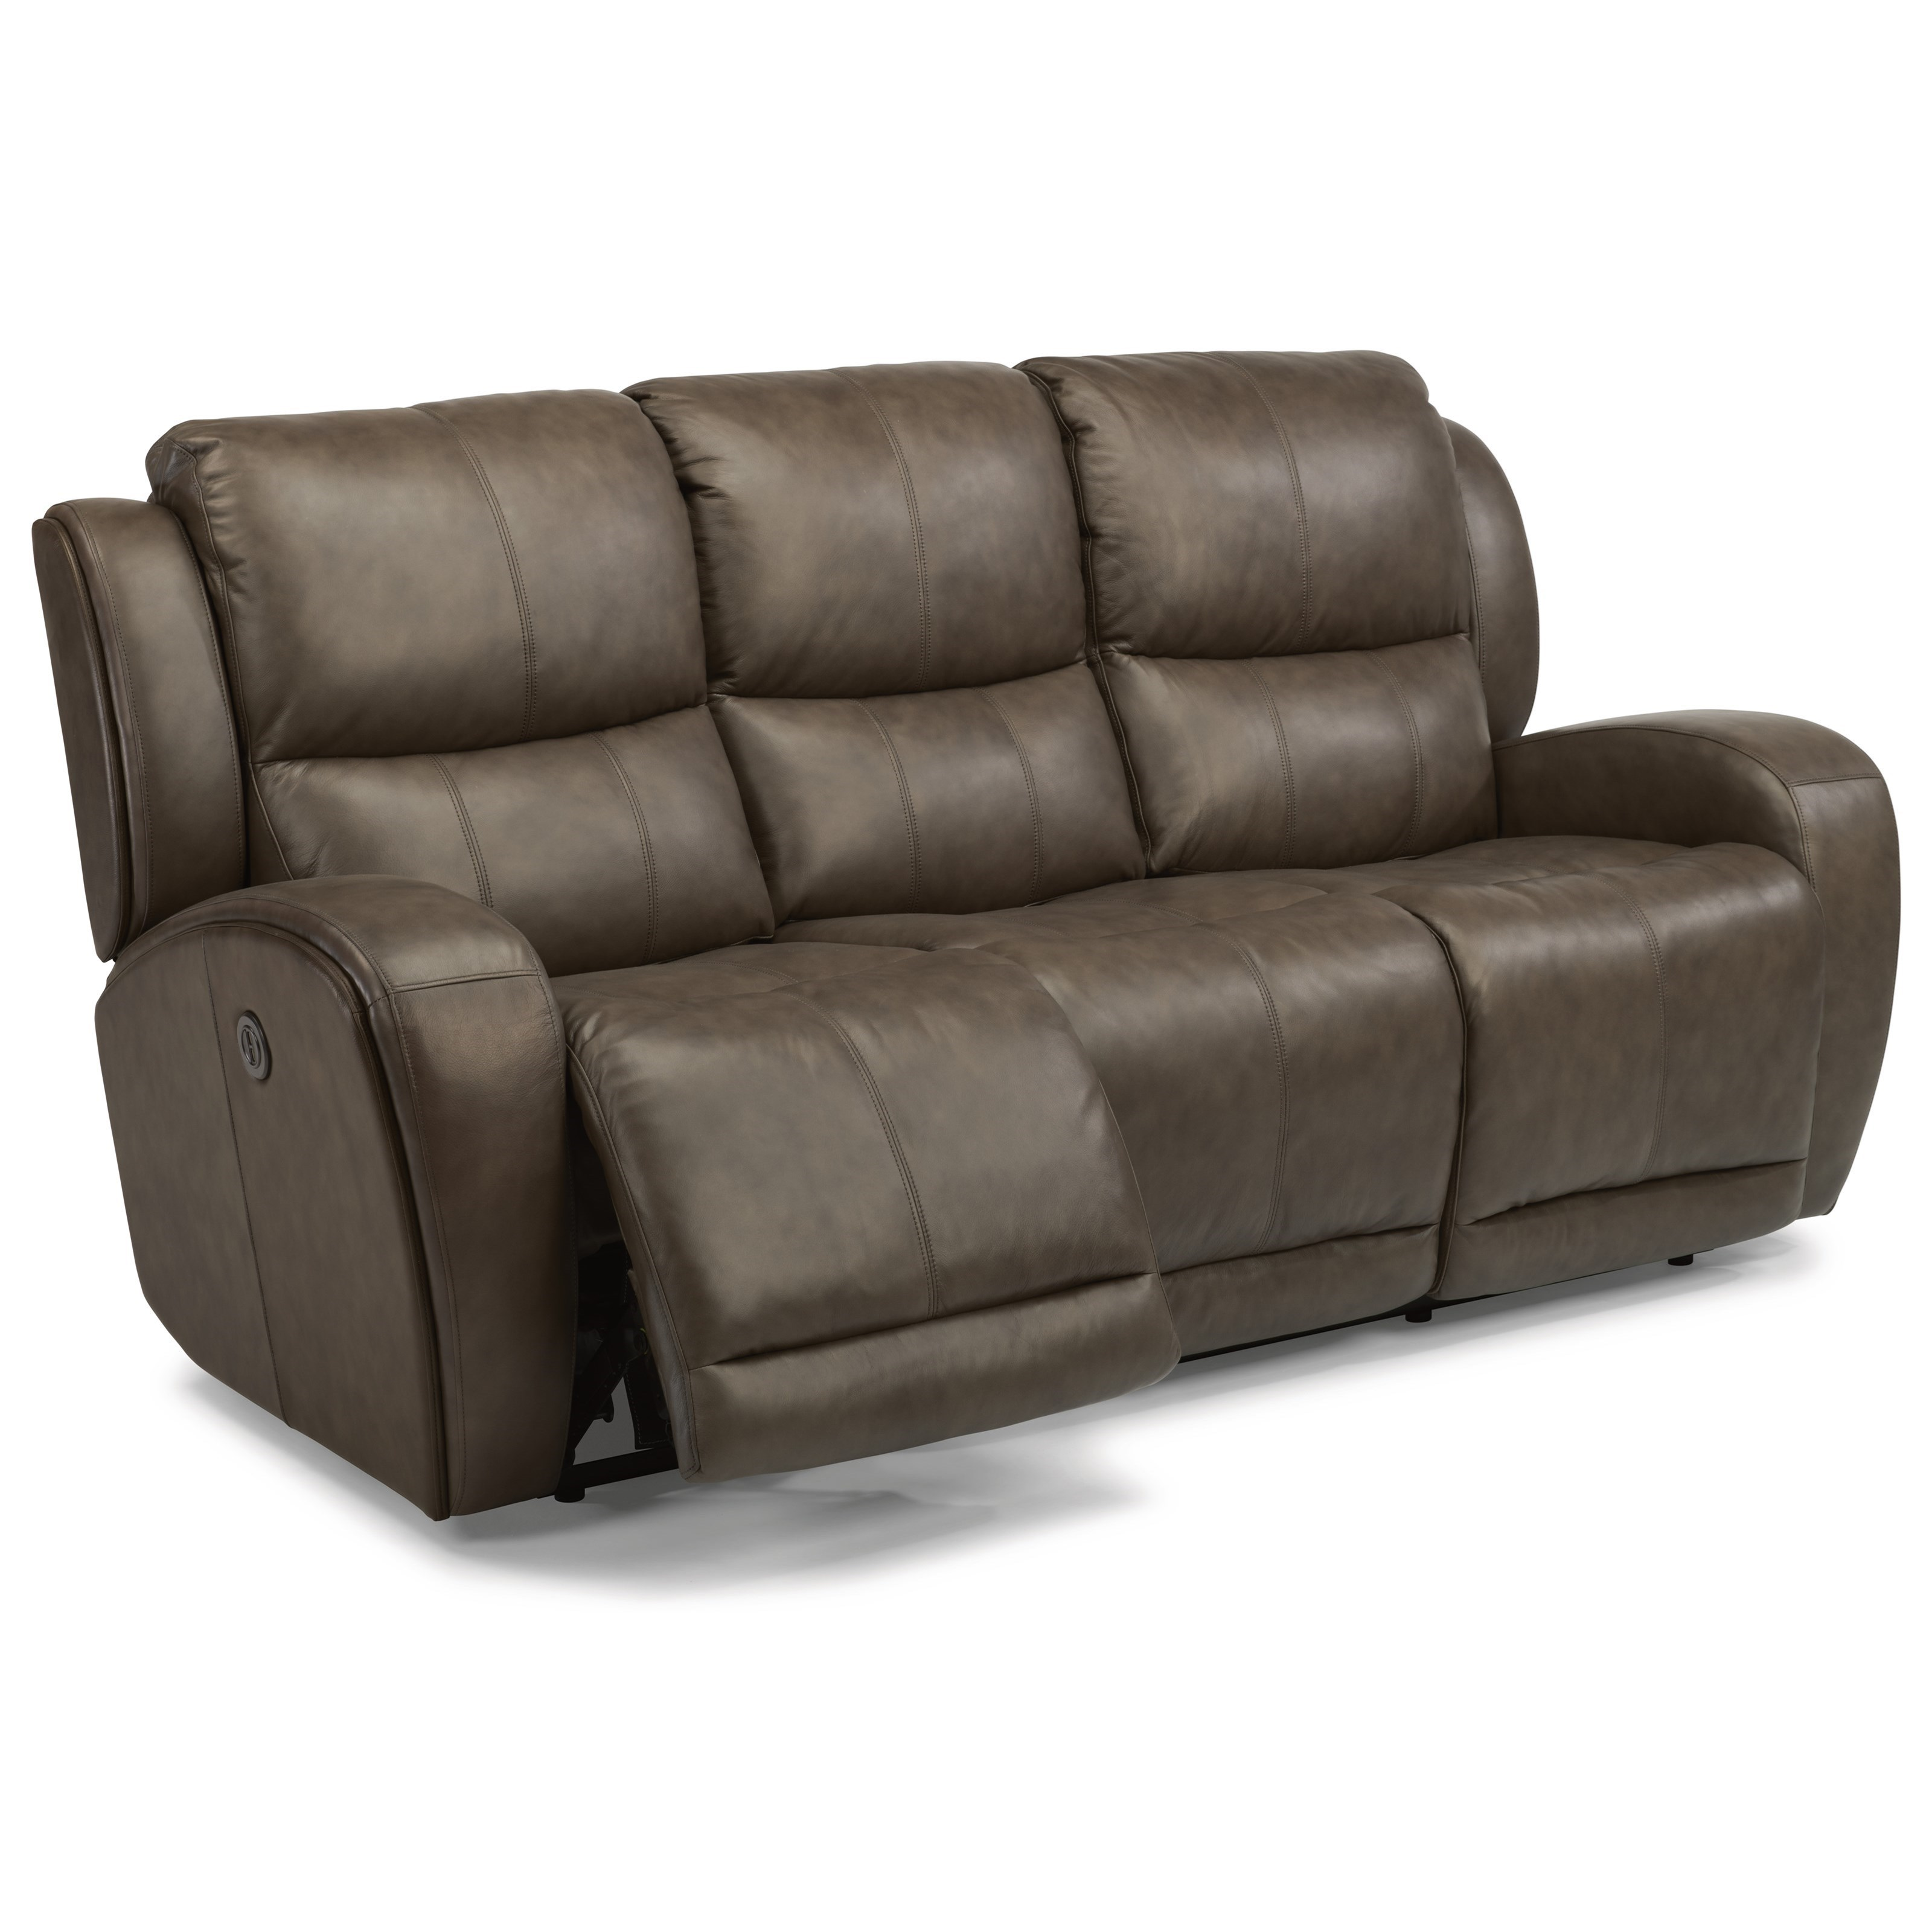 Flexsteel Recliner Sofa Parts Functionalities Net ~ Leather Sofa And Recliner